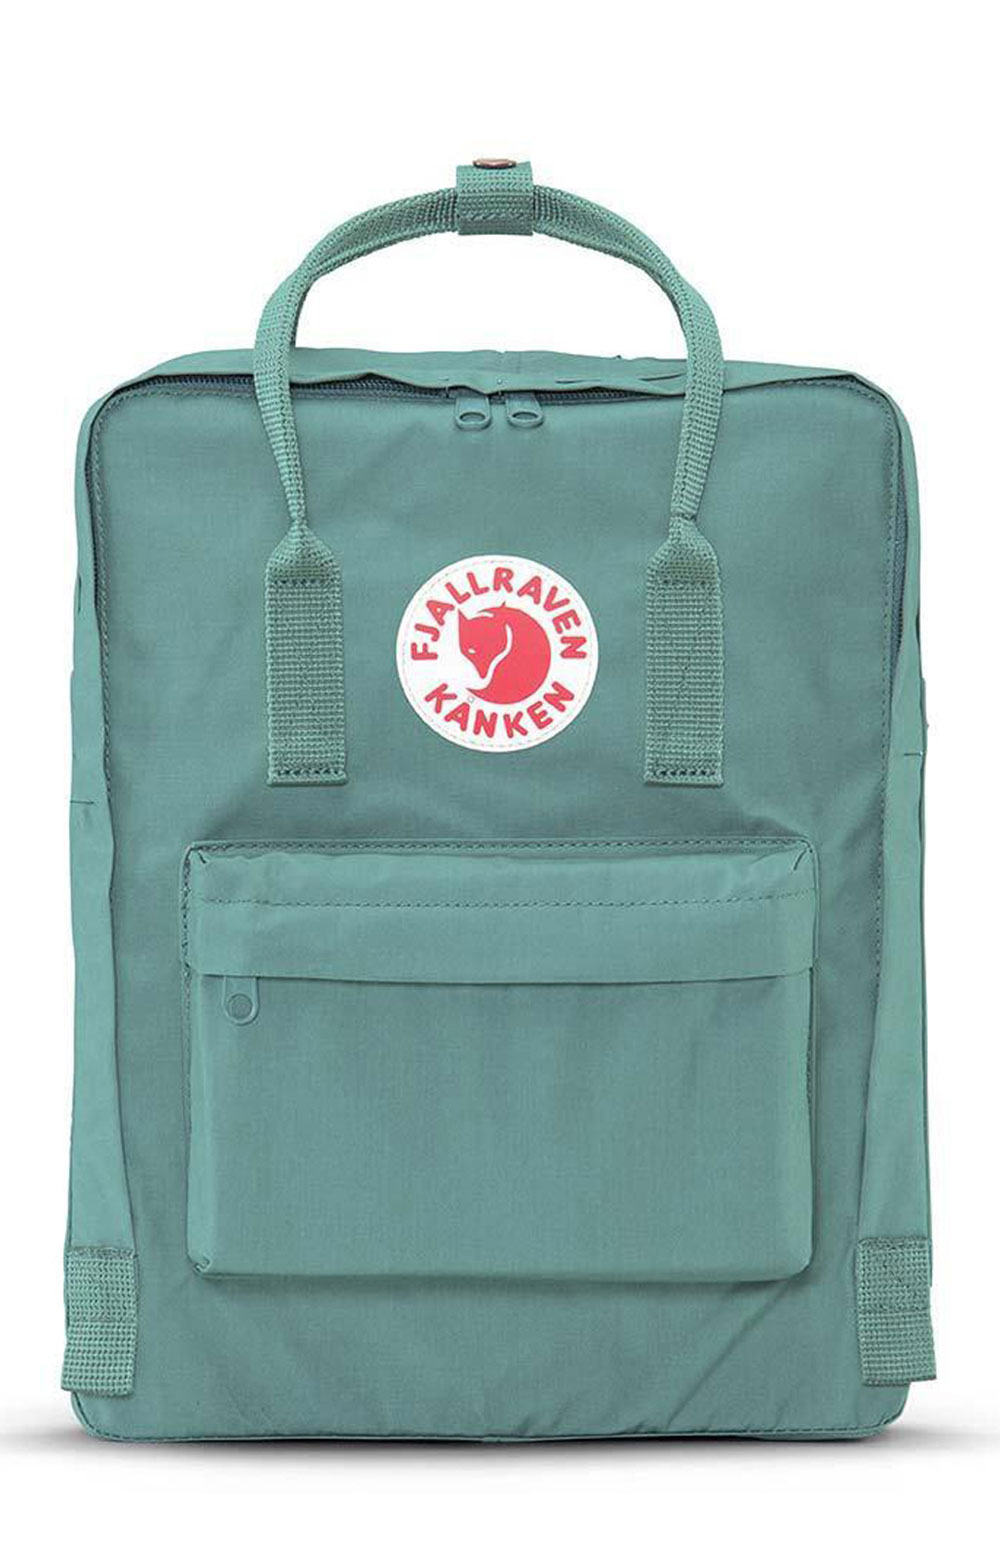 Kanken Backpack - Frost Green